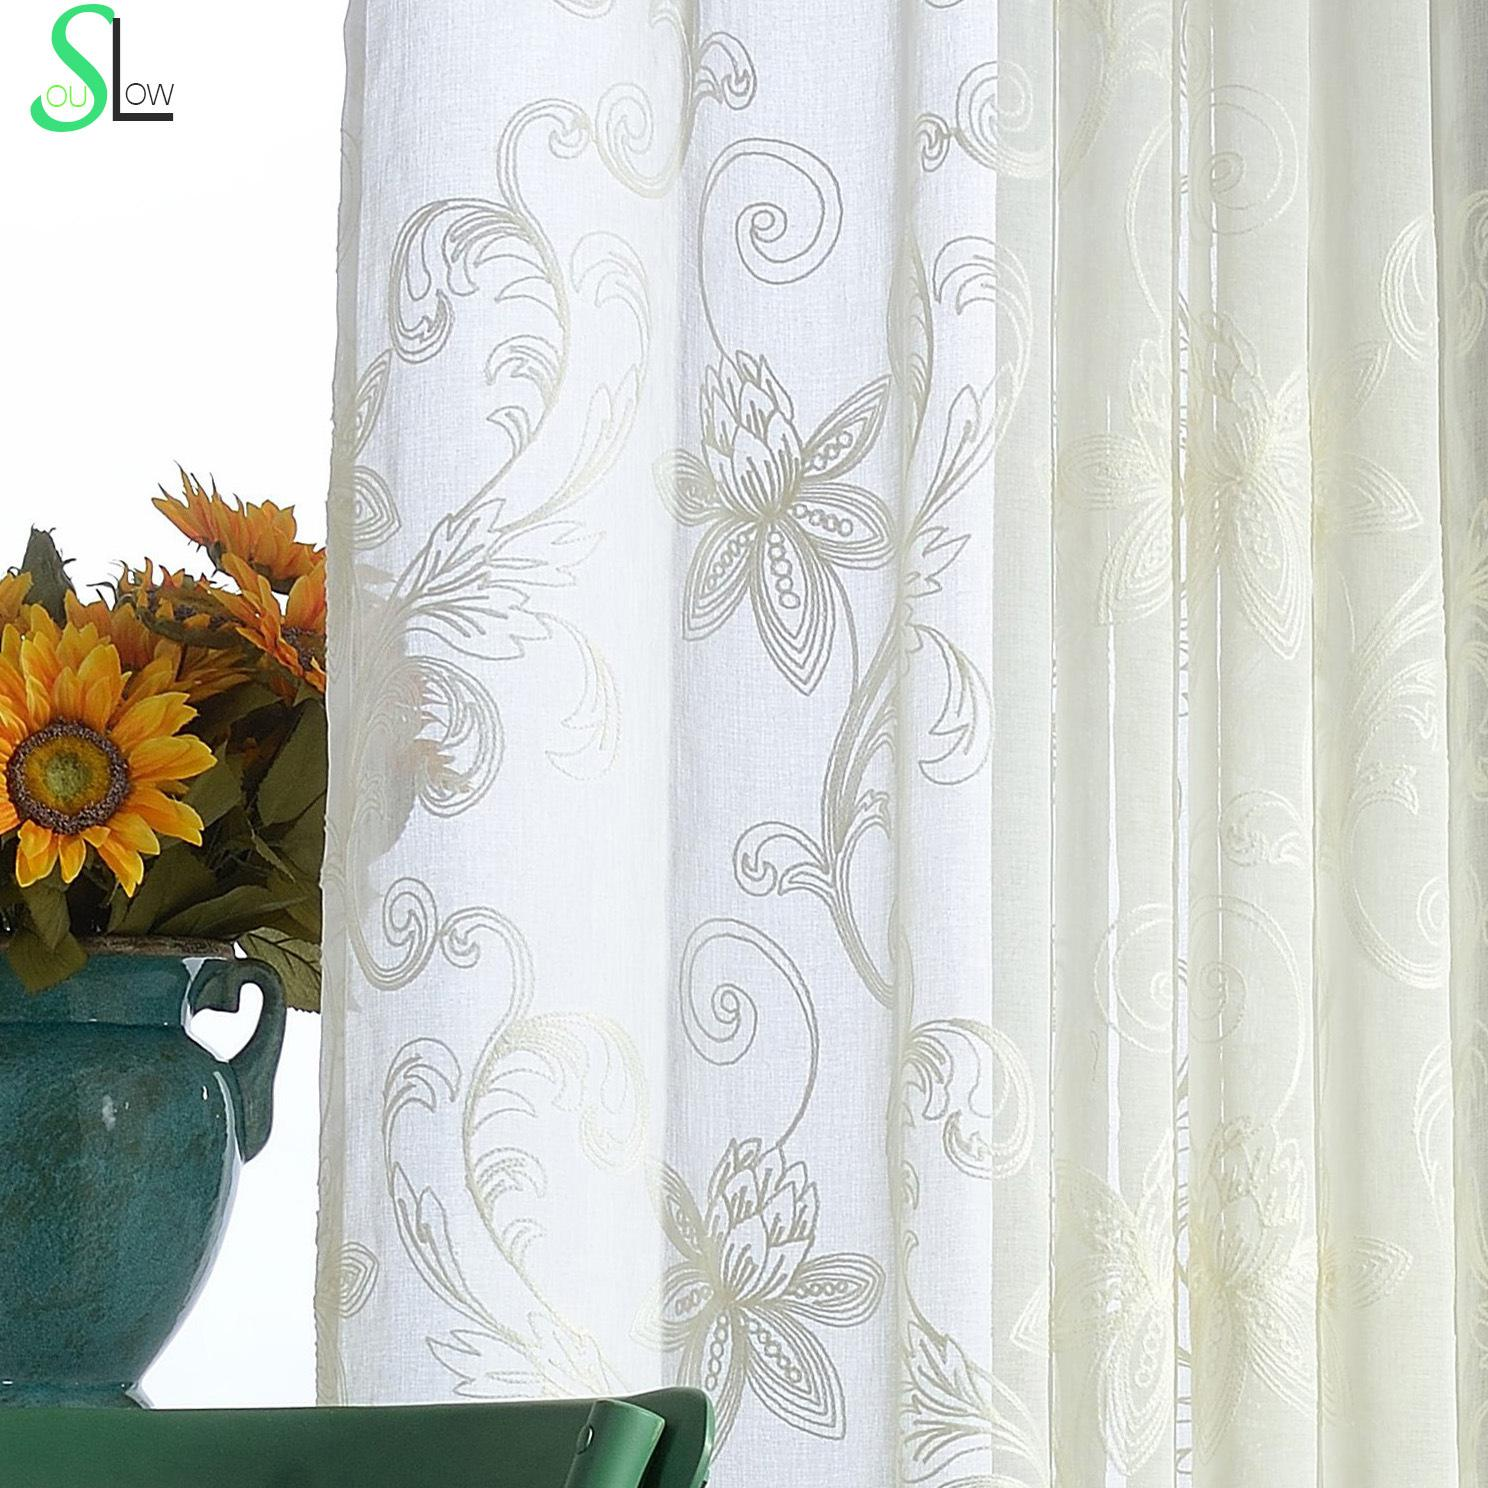 White 3d Curtains Embroidered Sheer Curtains Flowers Screen Tulle Curtains Rideau Voilage